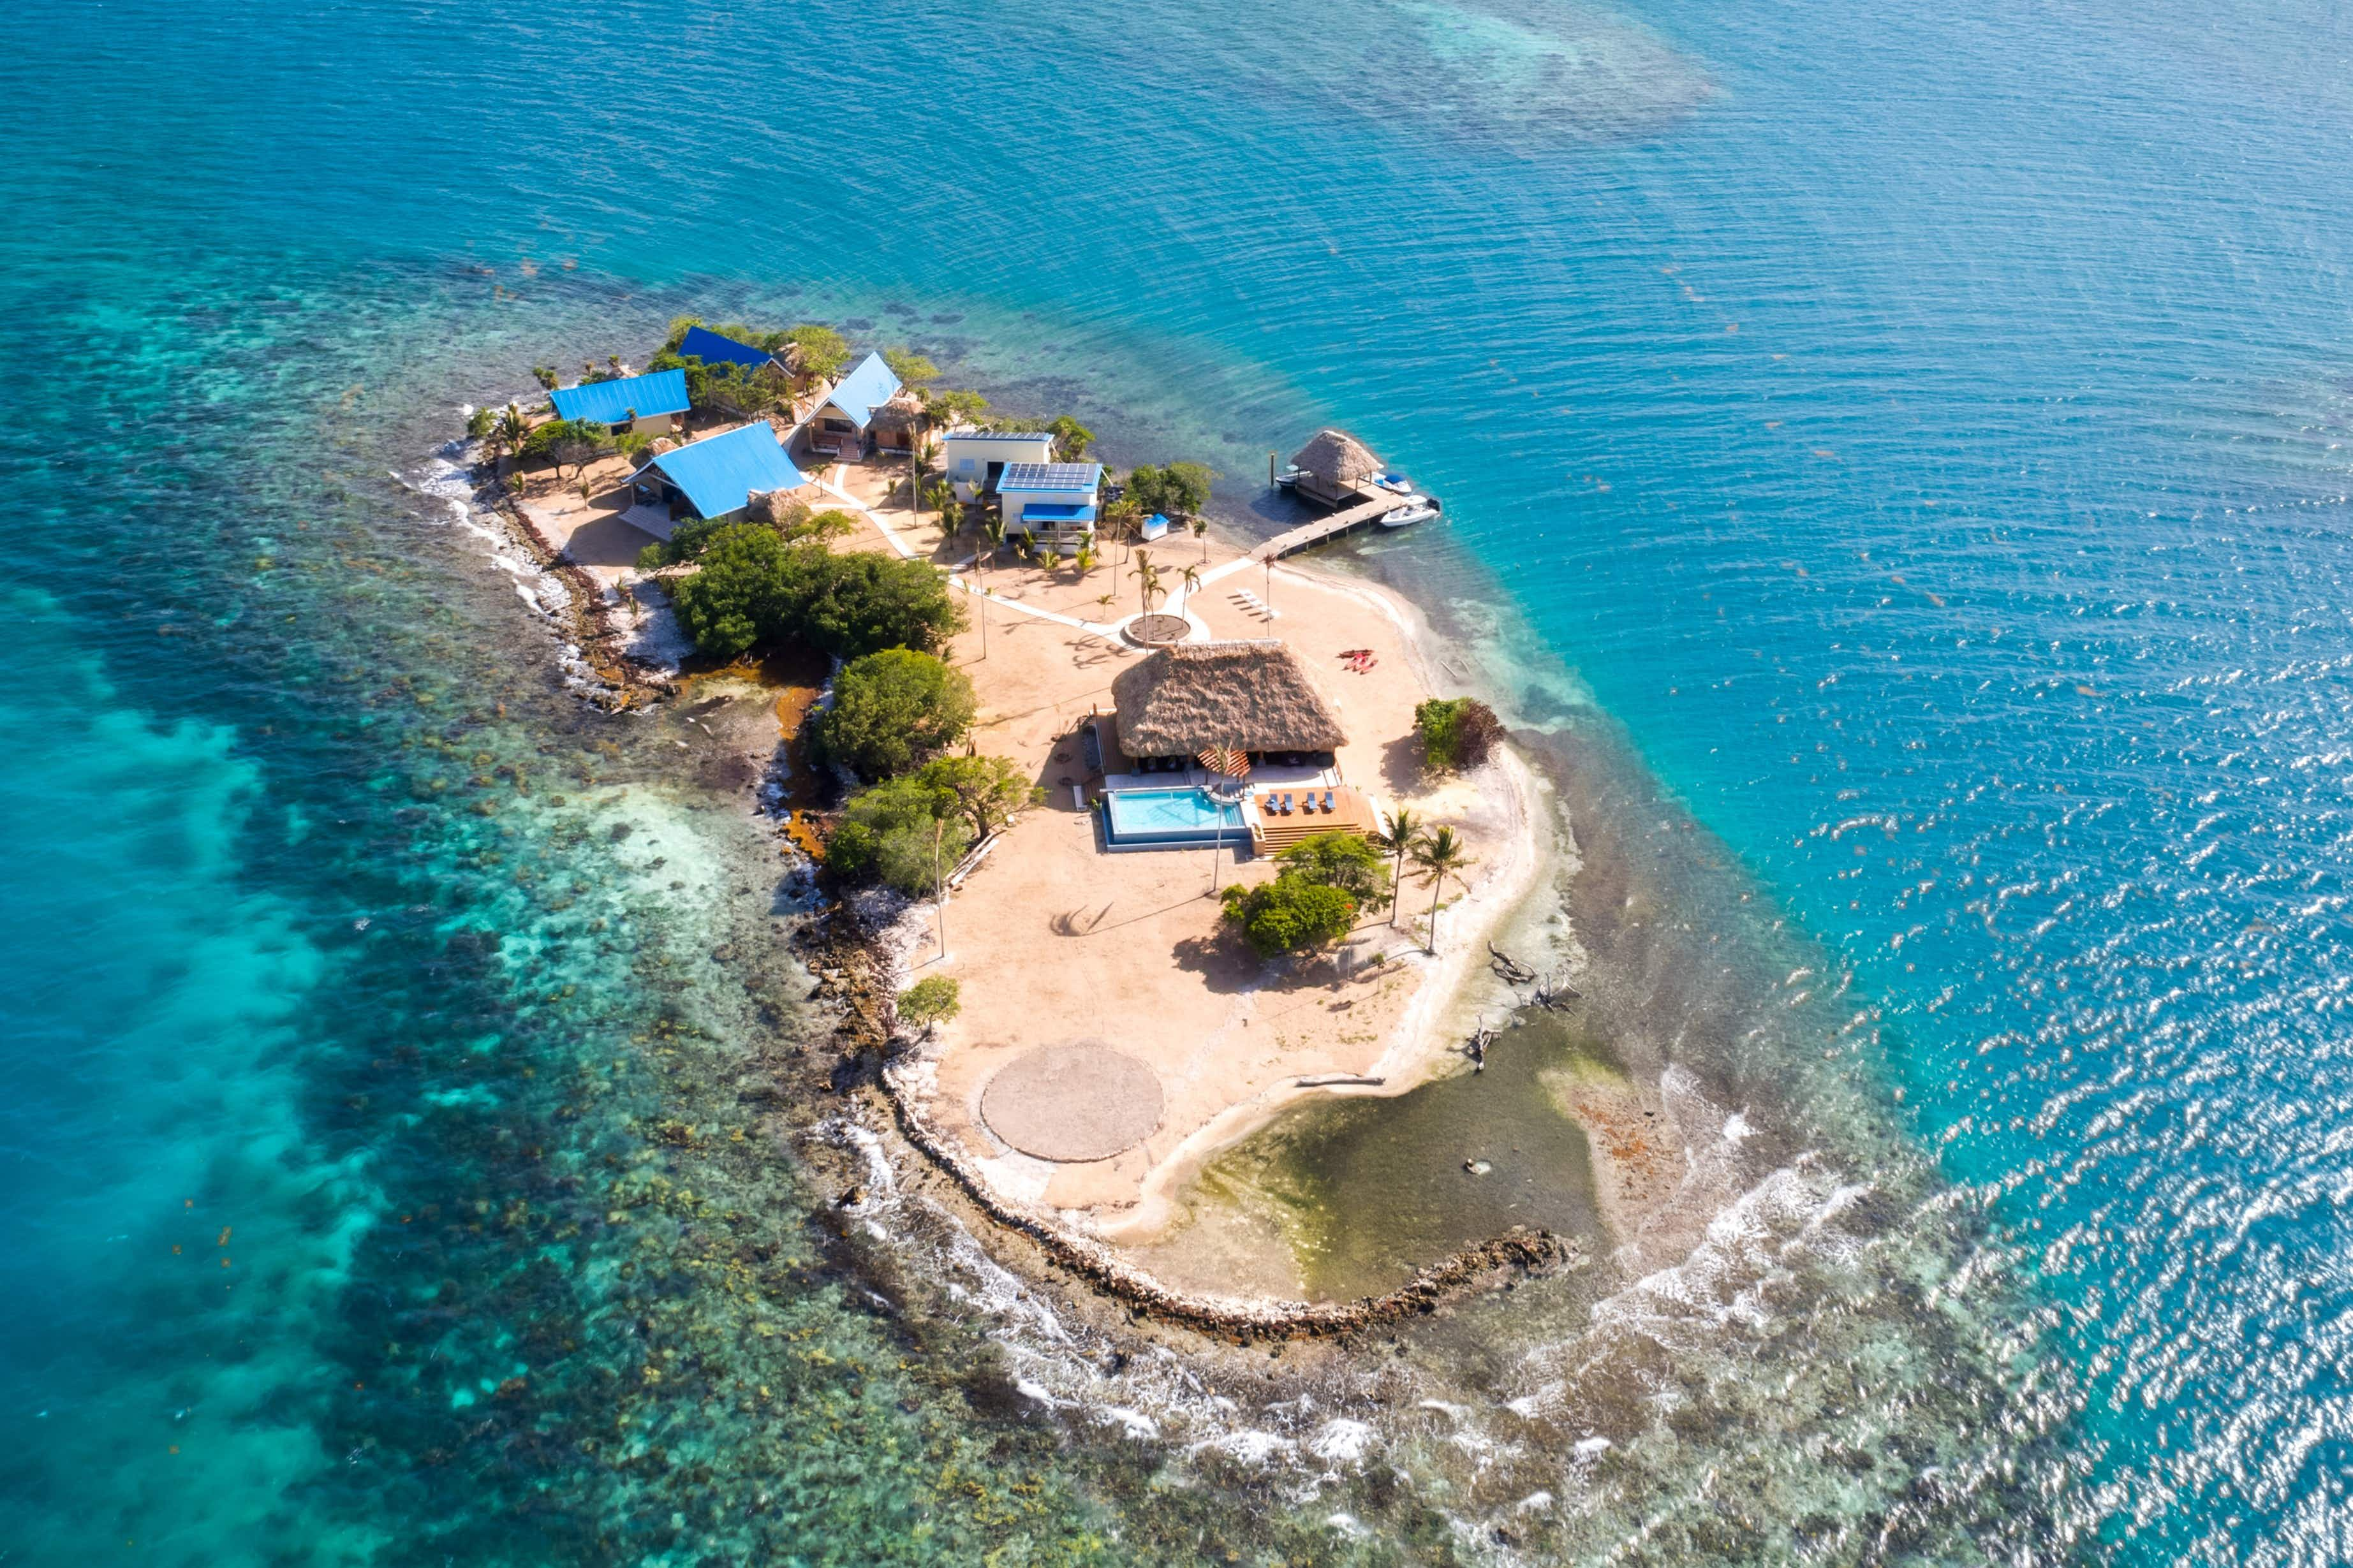 Kanu Island is a newly-opened hideaway located off the coast of Placencia in Belize. Image: Vrbo